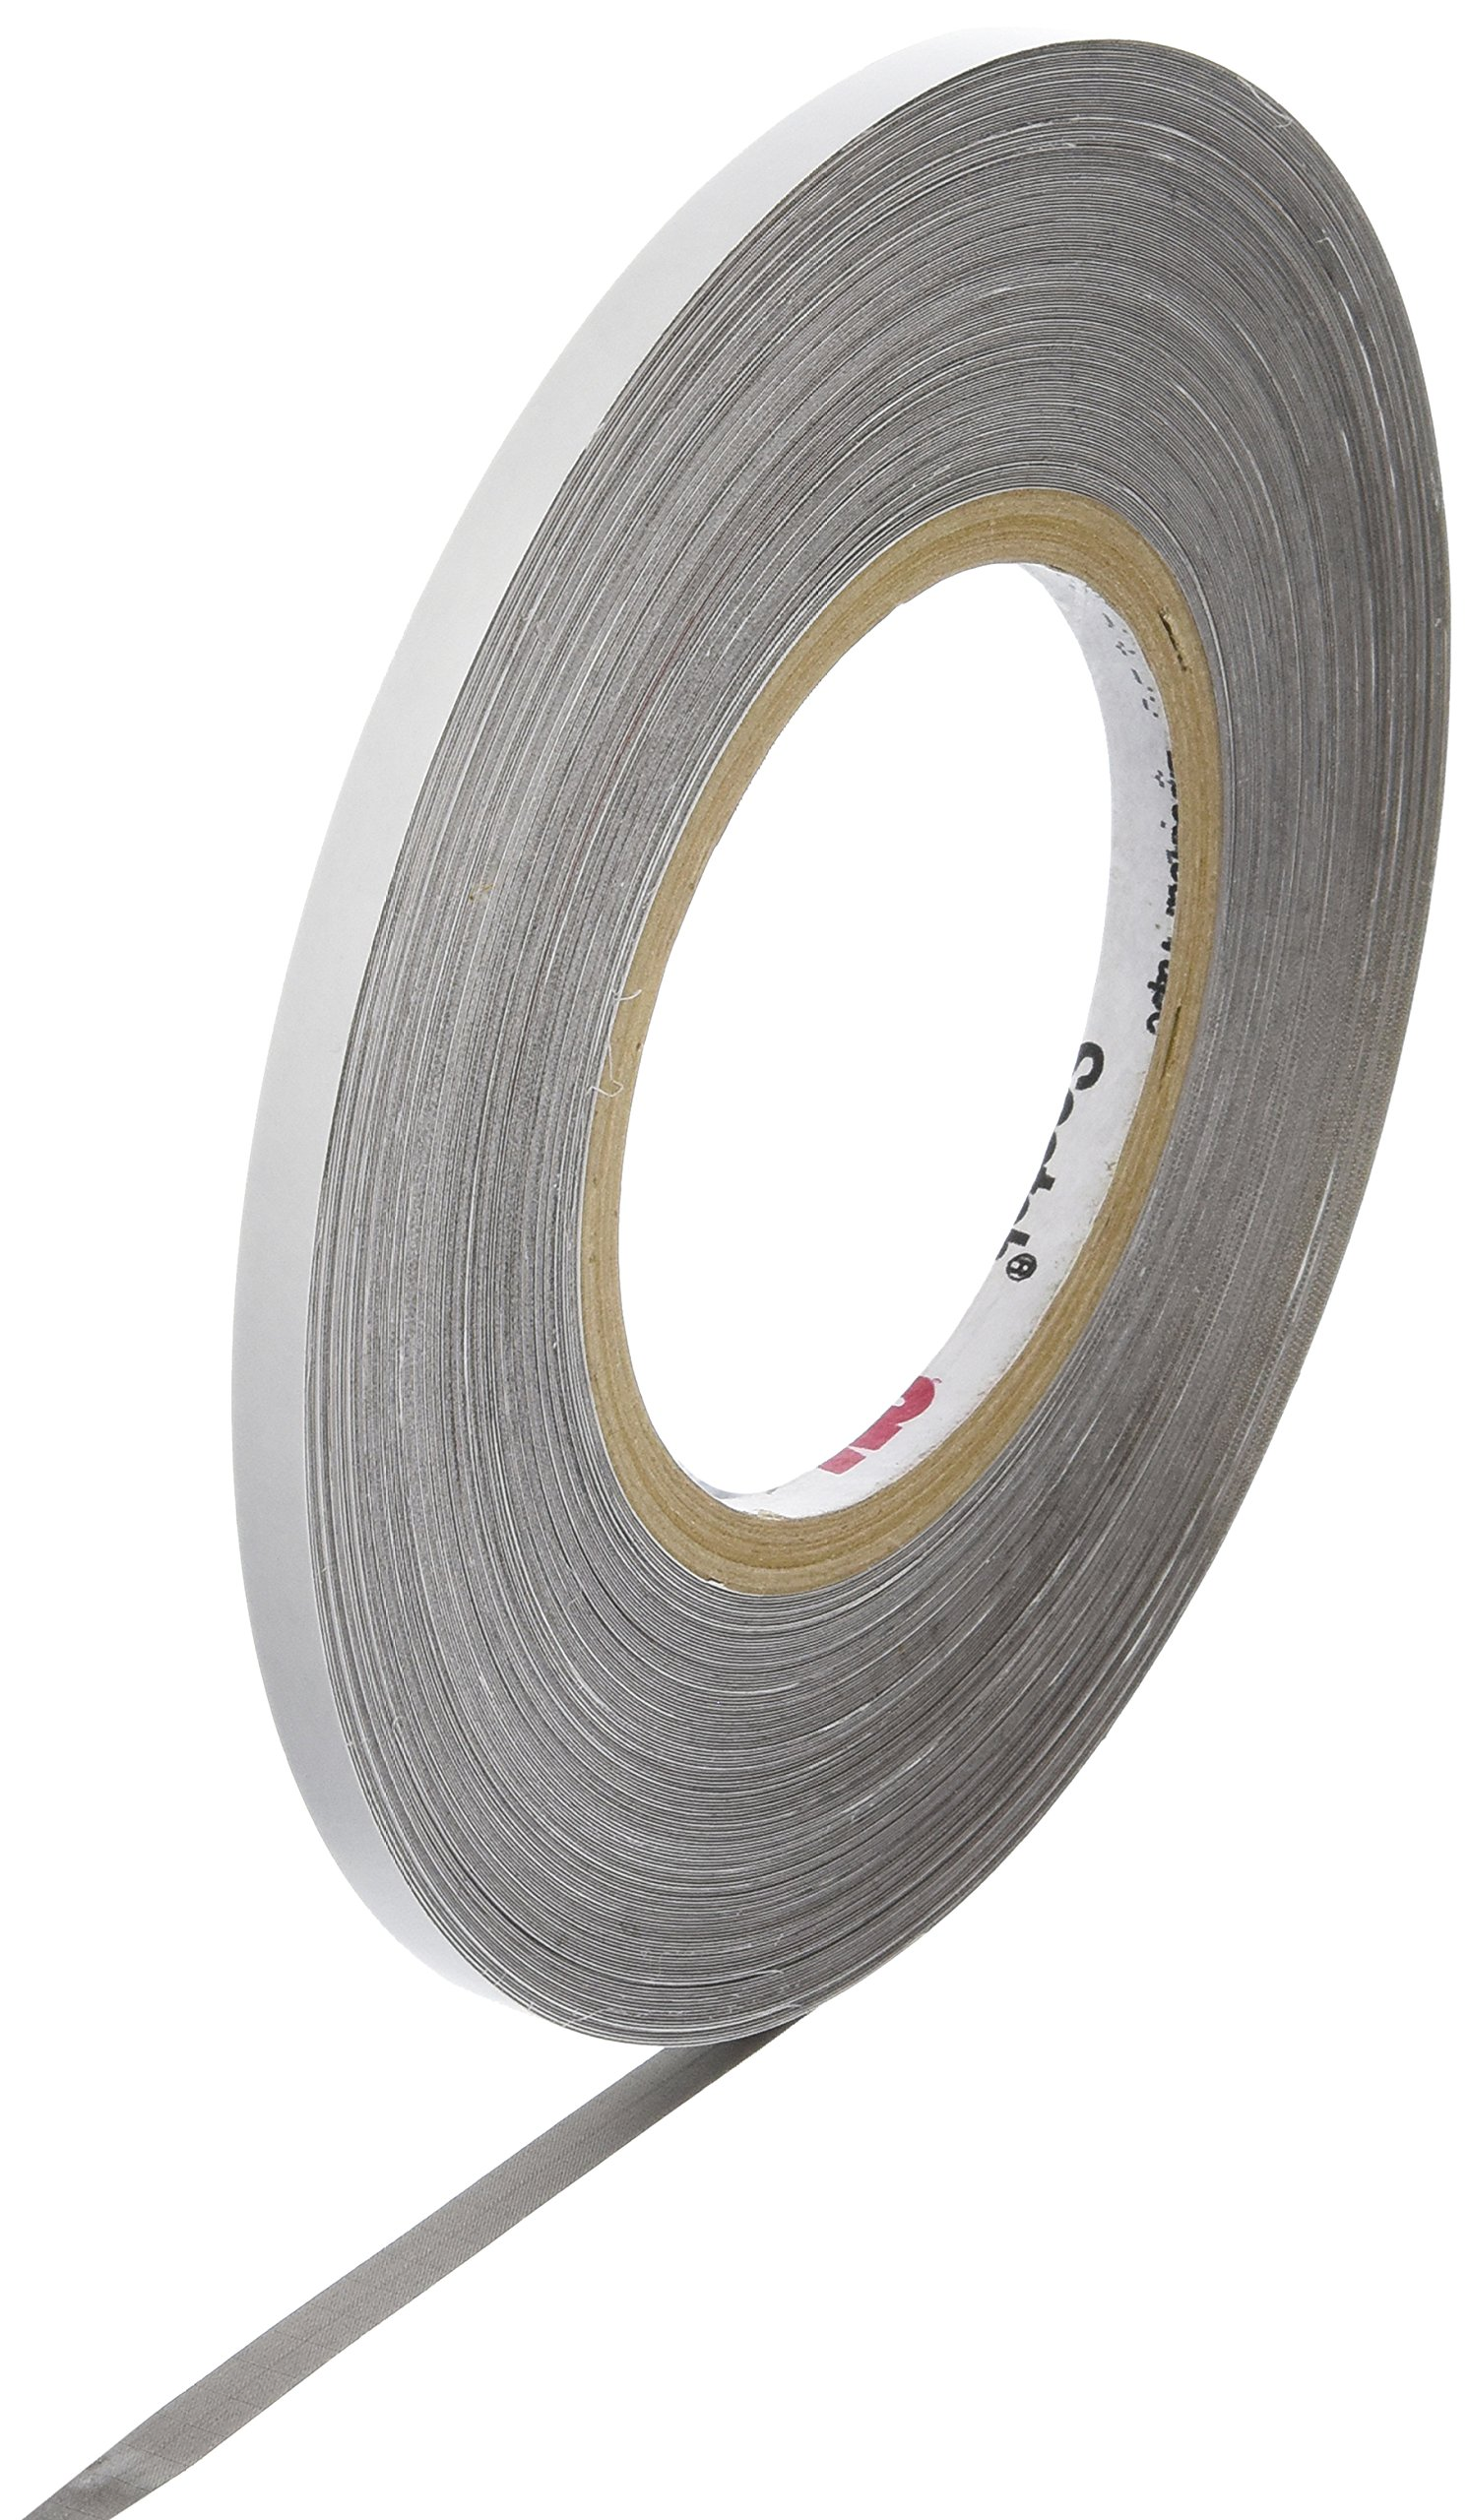 3M CN3190 0.25'' x 54.5yd Gray Nickel on Copper-Plated Polyester Fabric Tape, 54.5 yd Length, 0.25'' Width, Roll